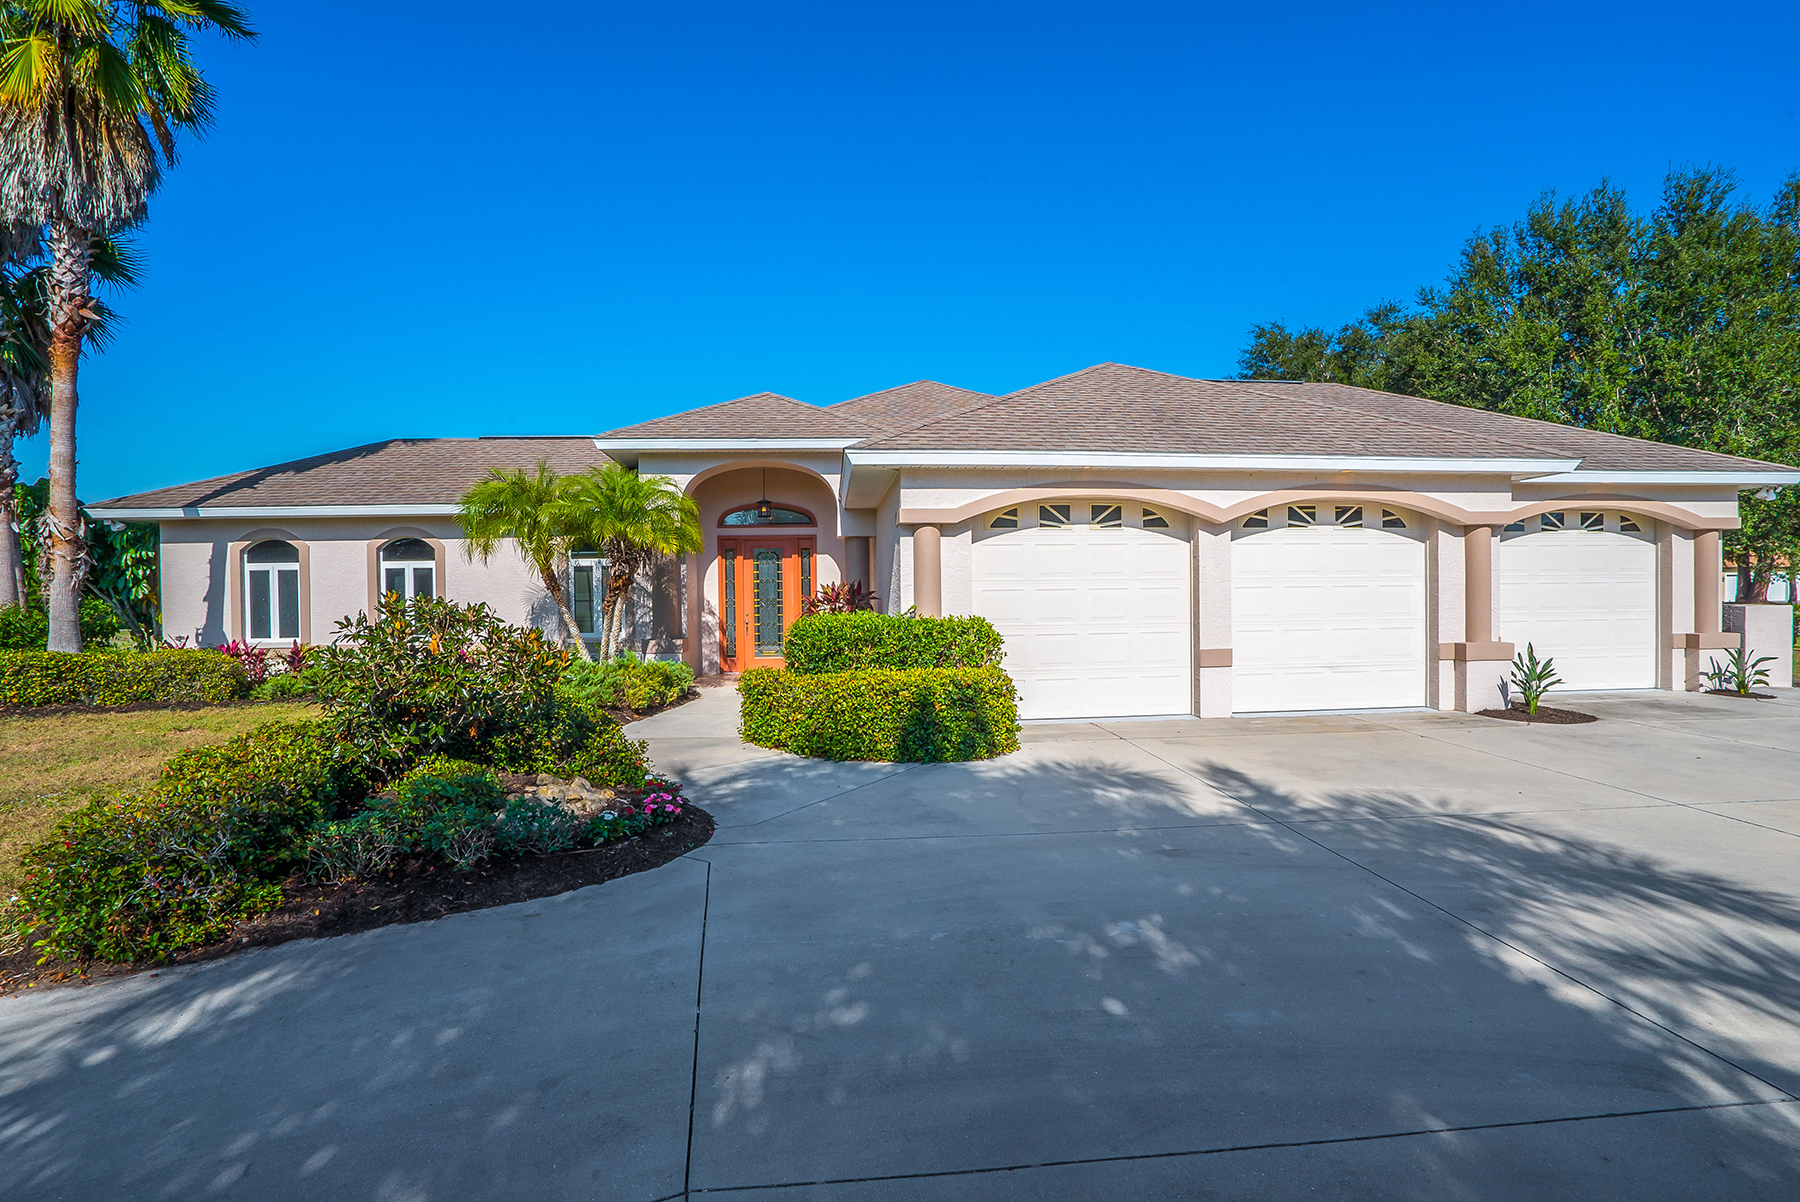 Single Family Home for Sale at MISSION VALLEY ESTATES 799 Capistrano Dr Nokomis, Florida, 34275 United States